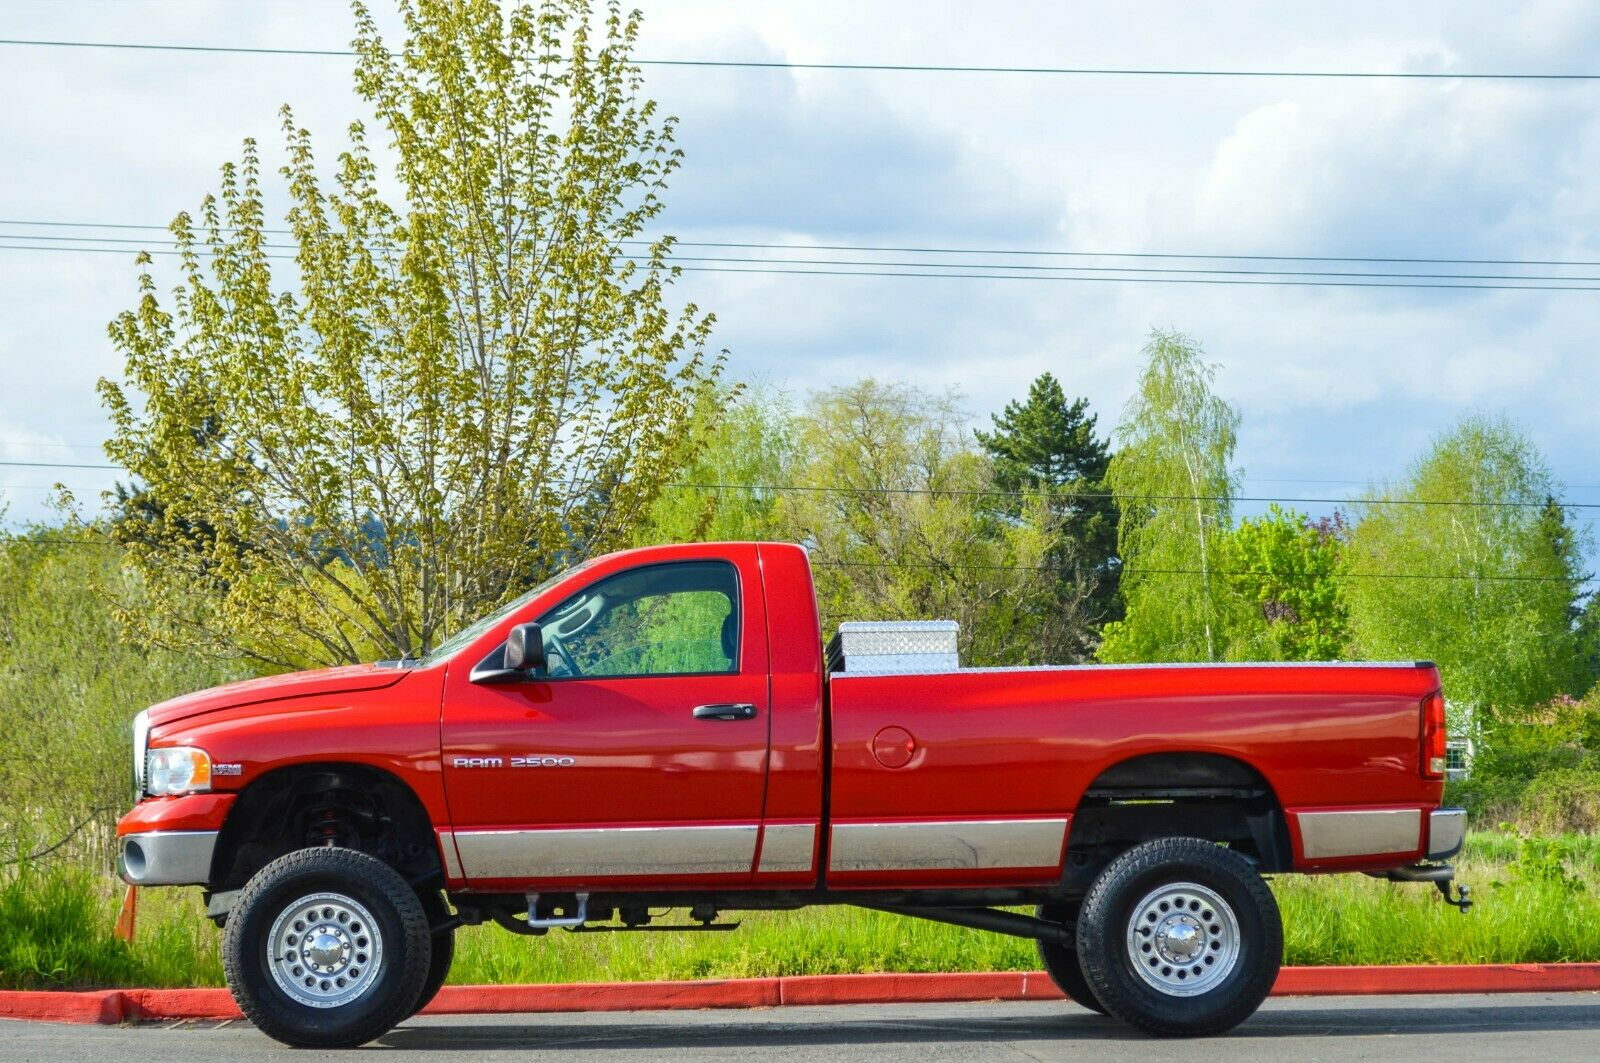 fully loaded 2004 Dodge Ram 2500 lifted